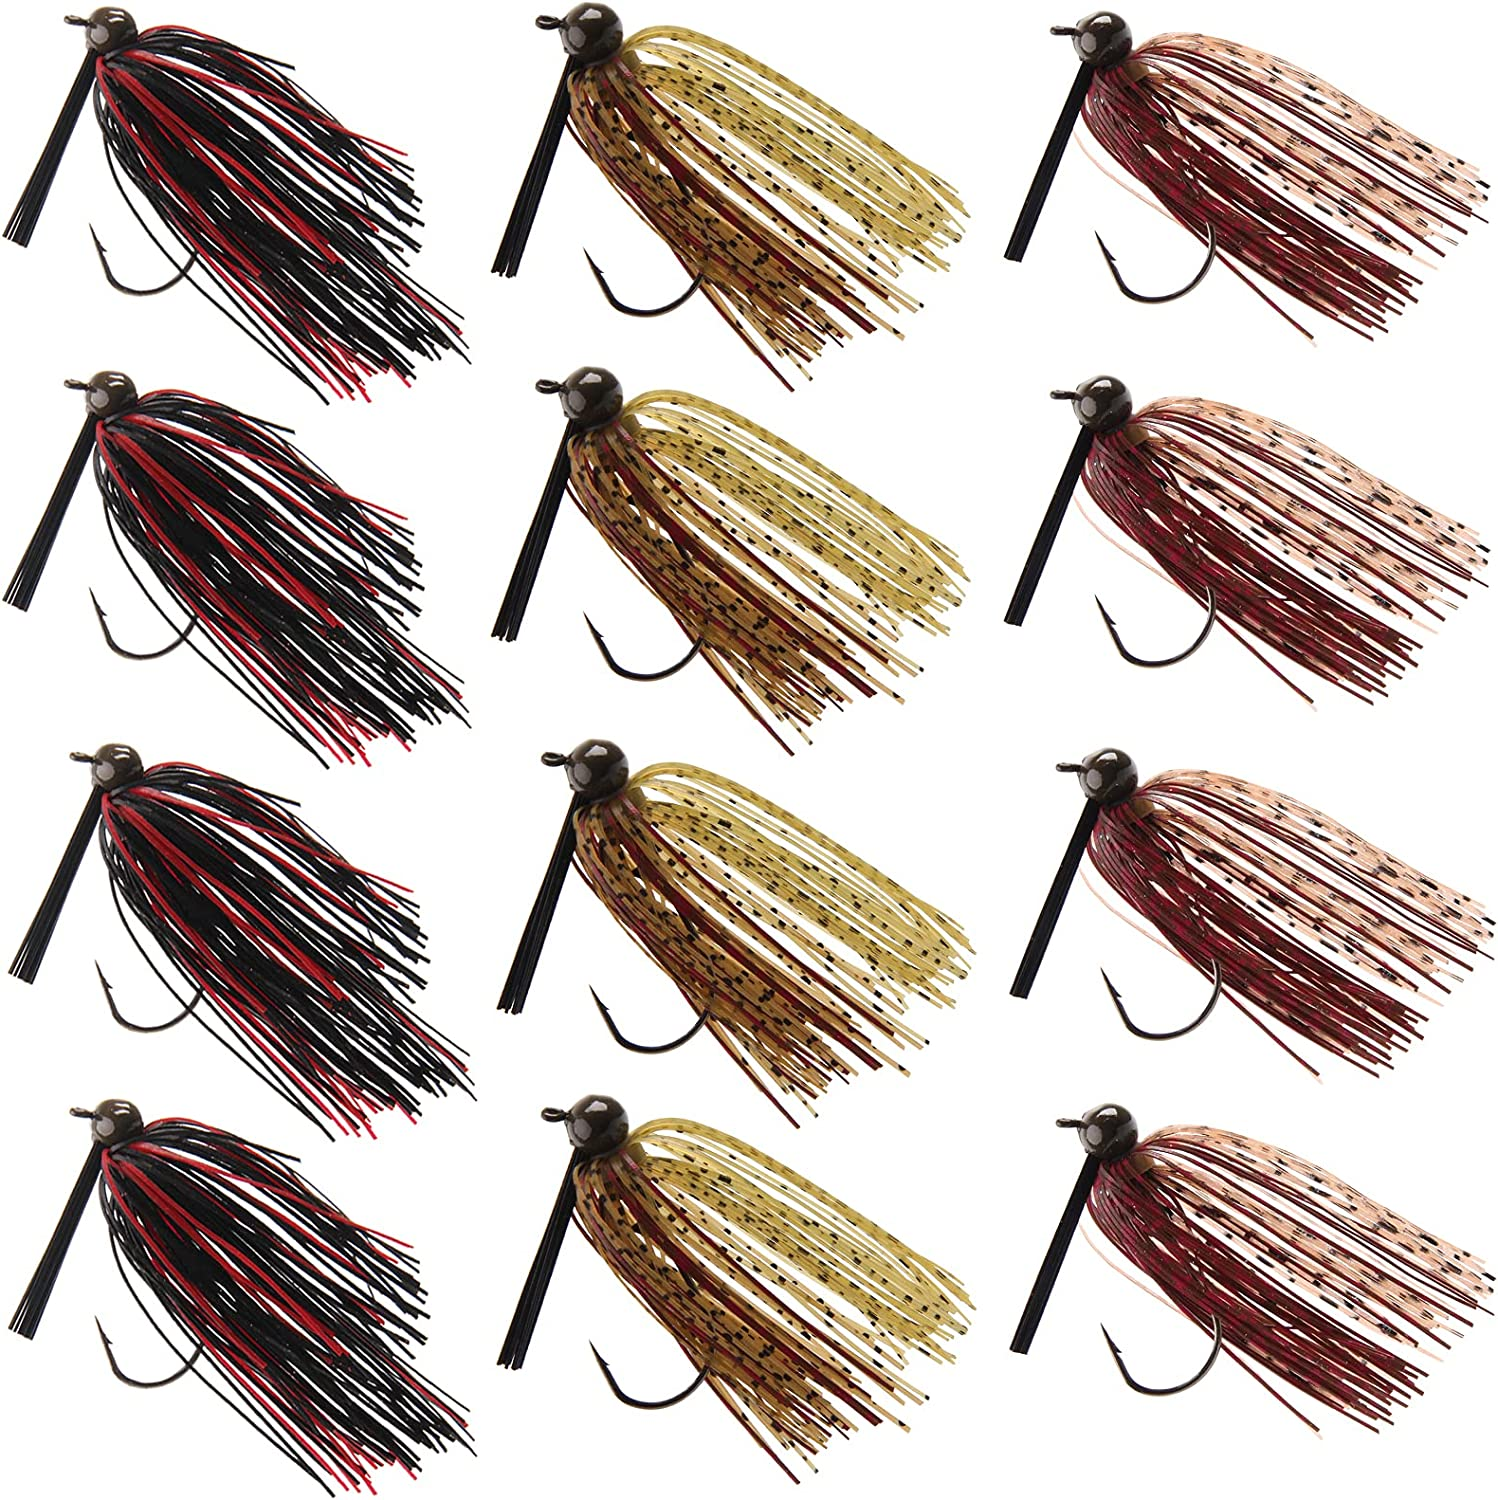 Bass Fishing Jigs Swim Courier shipping free Lures Guard F In a popularity with Weed